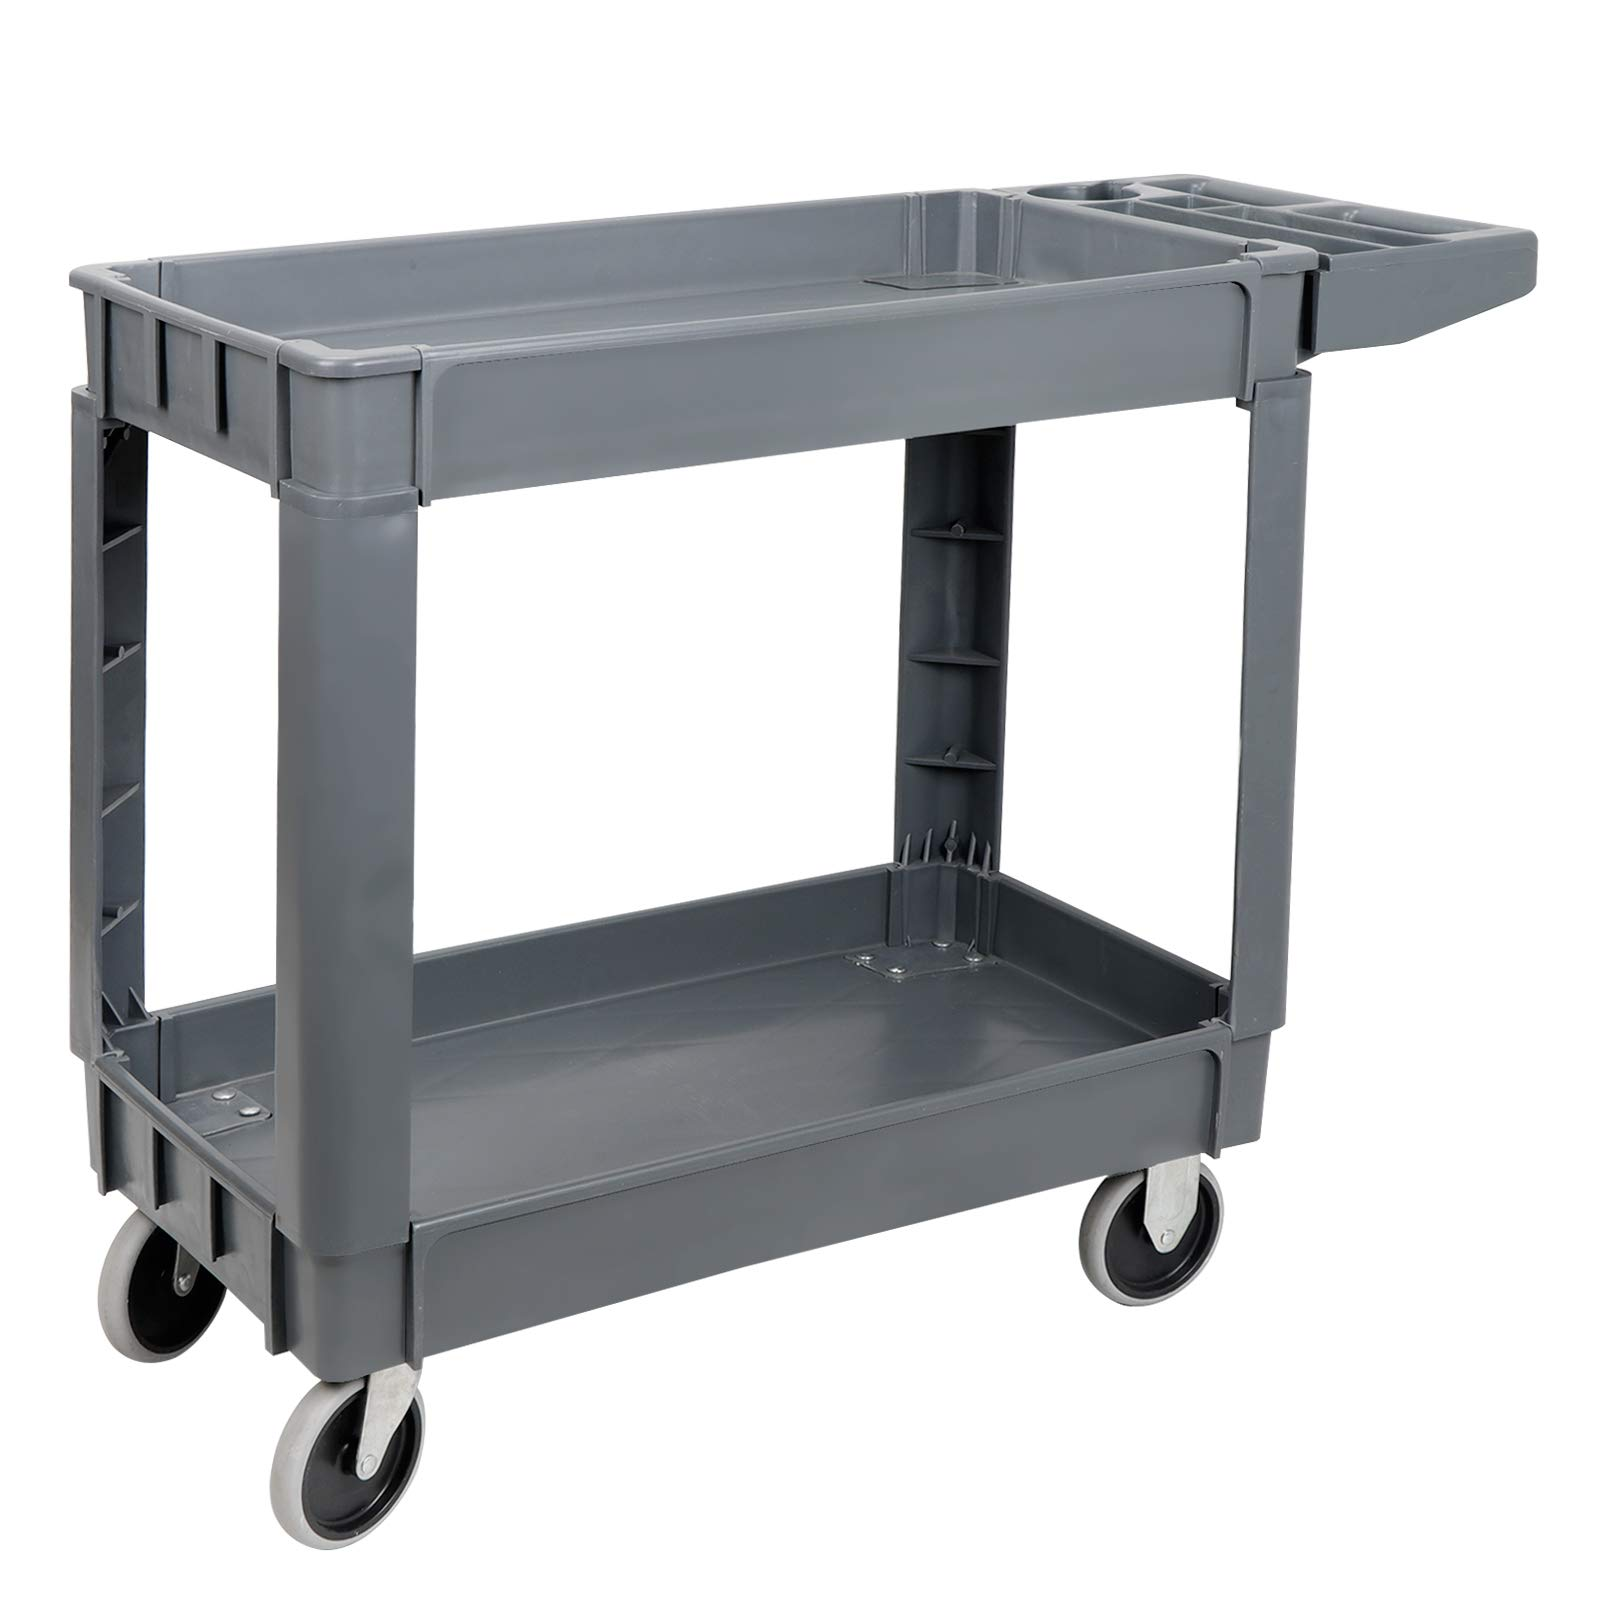 ZENY Rolling Utility Tool Storage Carts Shelves Push Service Cart Tools Organizer with Wheels 550 LBS Capacity